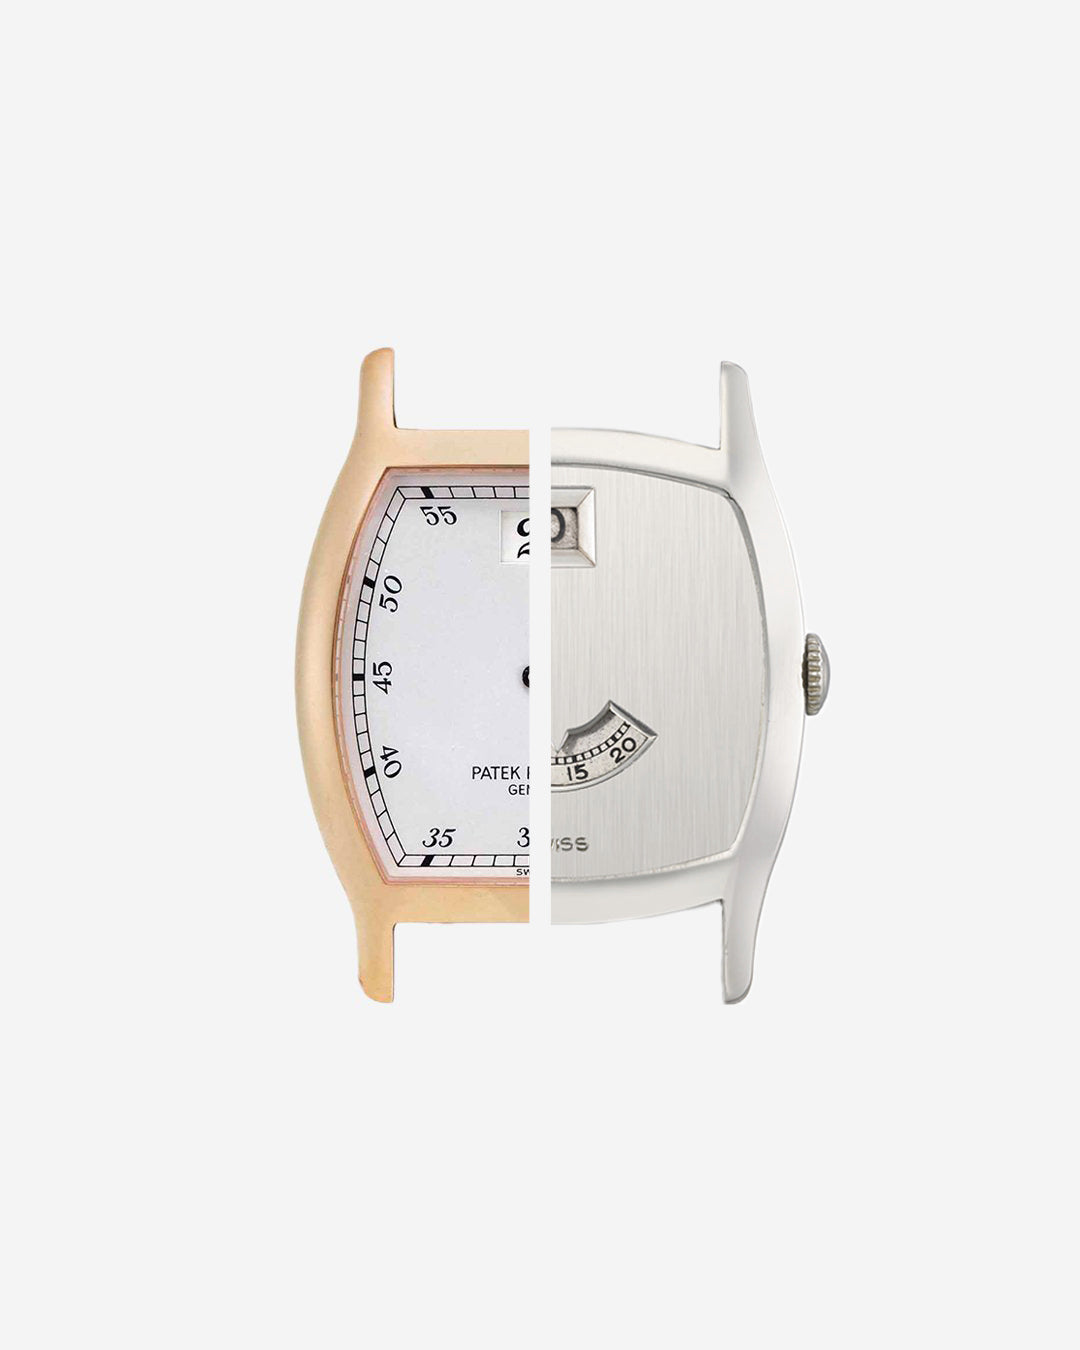 Two jump hour watches cut through in The Balance of Symmetry and Asymmetry in Dial Design for A Collected Man London